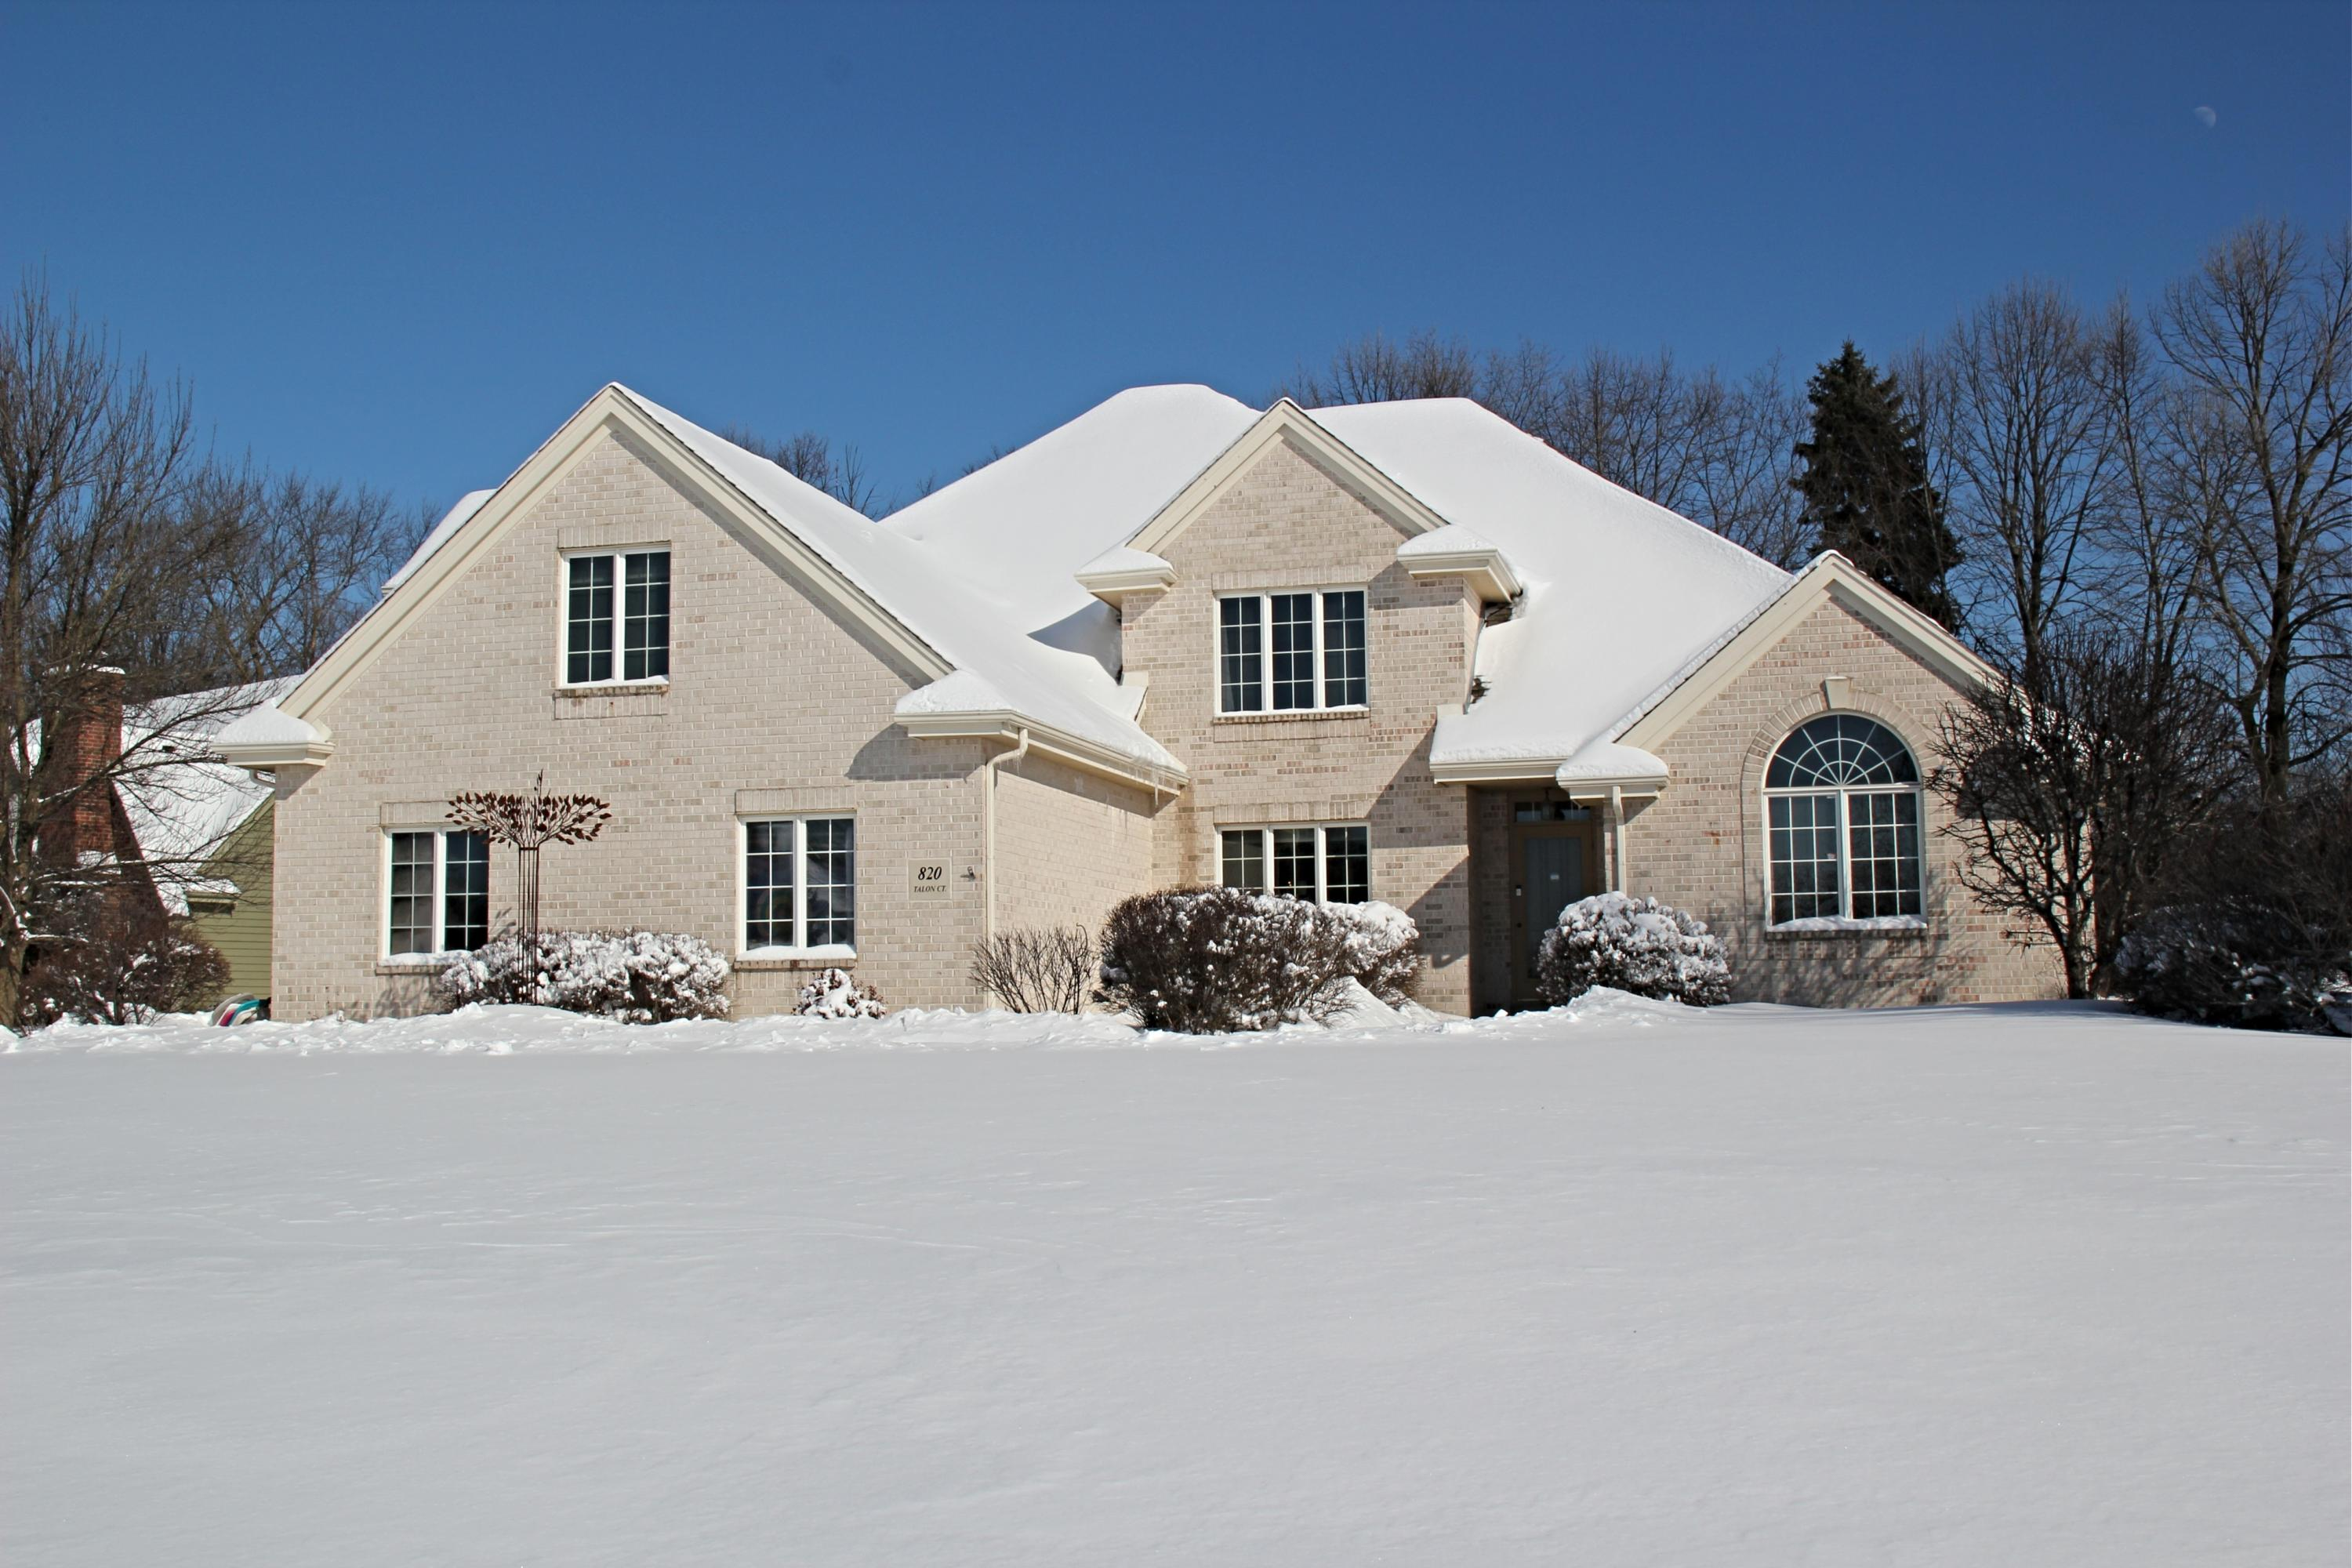 820 Talon Ct, Brookfield, Wisconsin 53045, 4 Bedrooms Bedrooms, 11 Rooms Rooms,2 BathroomsBathrooms,Single-Family,For Sale,Talon Ct,1622728